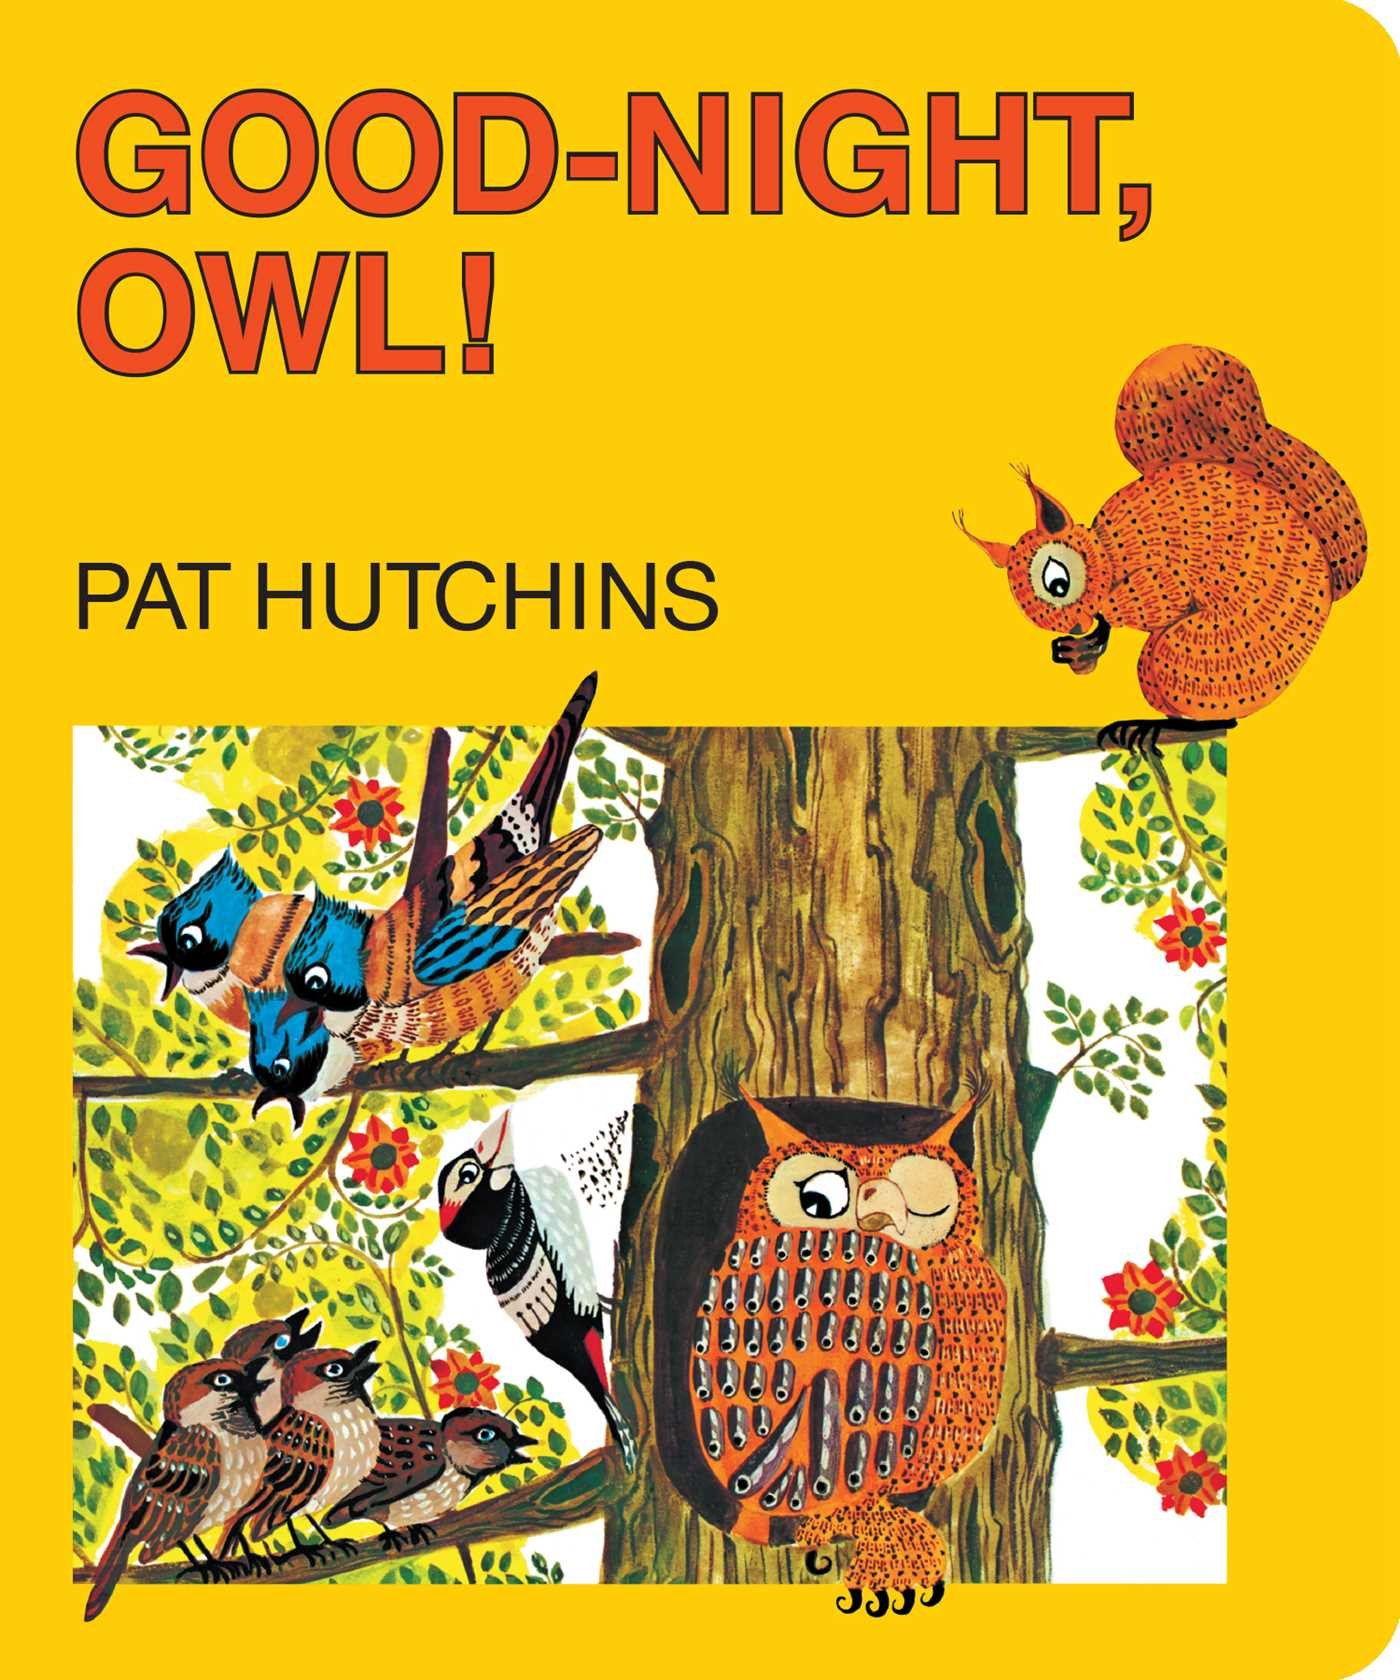 Night owl reading lamps - Good Night Owl Classic Board Books Pat Hutchins 9781481444248 Amazon Com Books